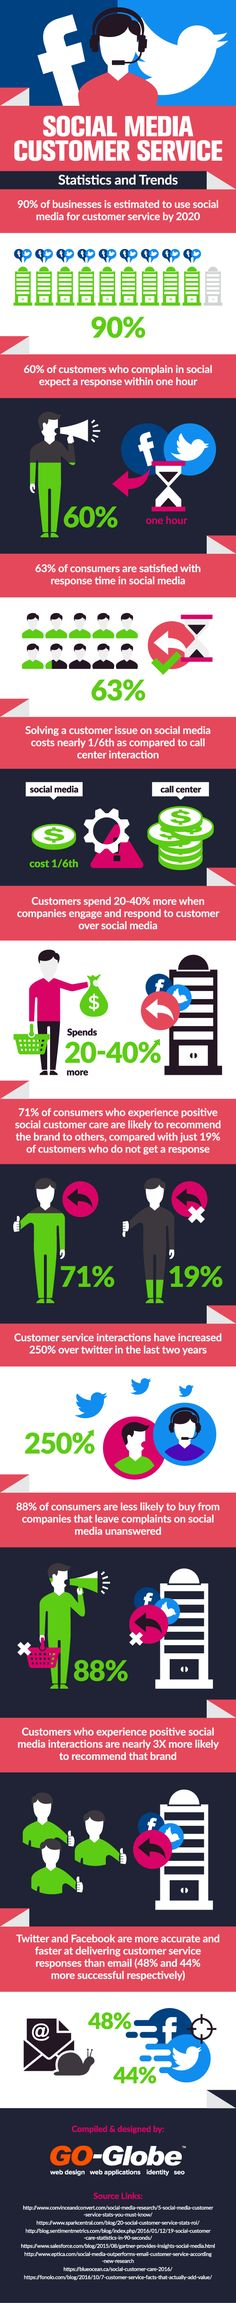 Why Social Media is the Future of Customer Service